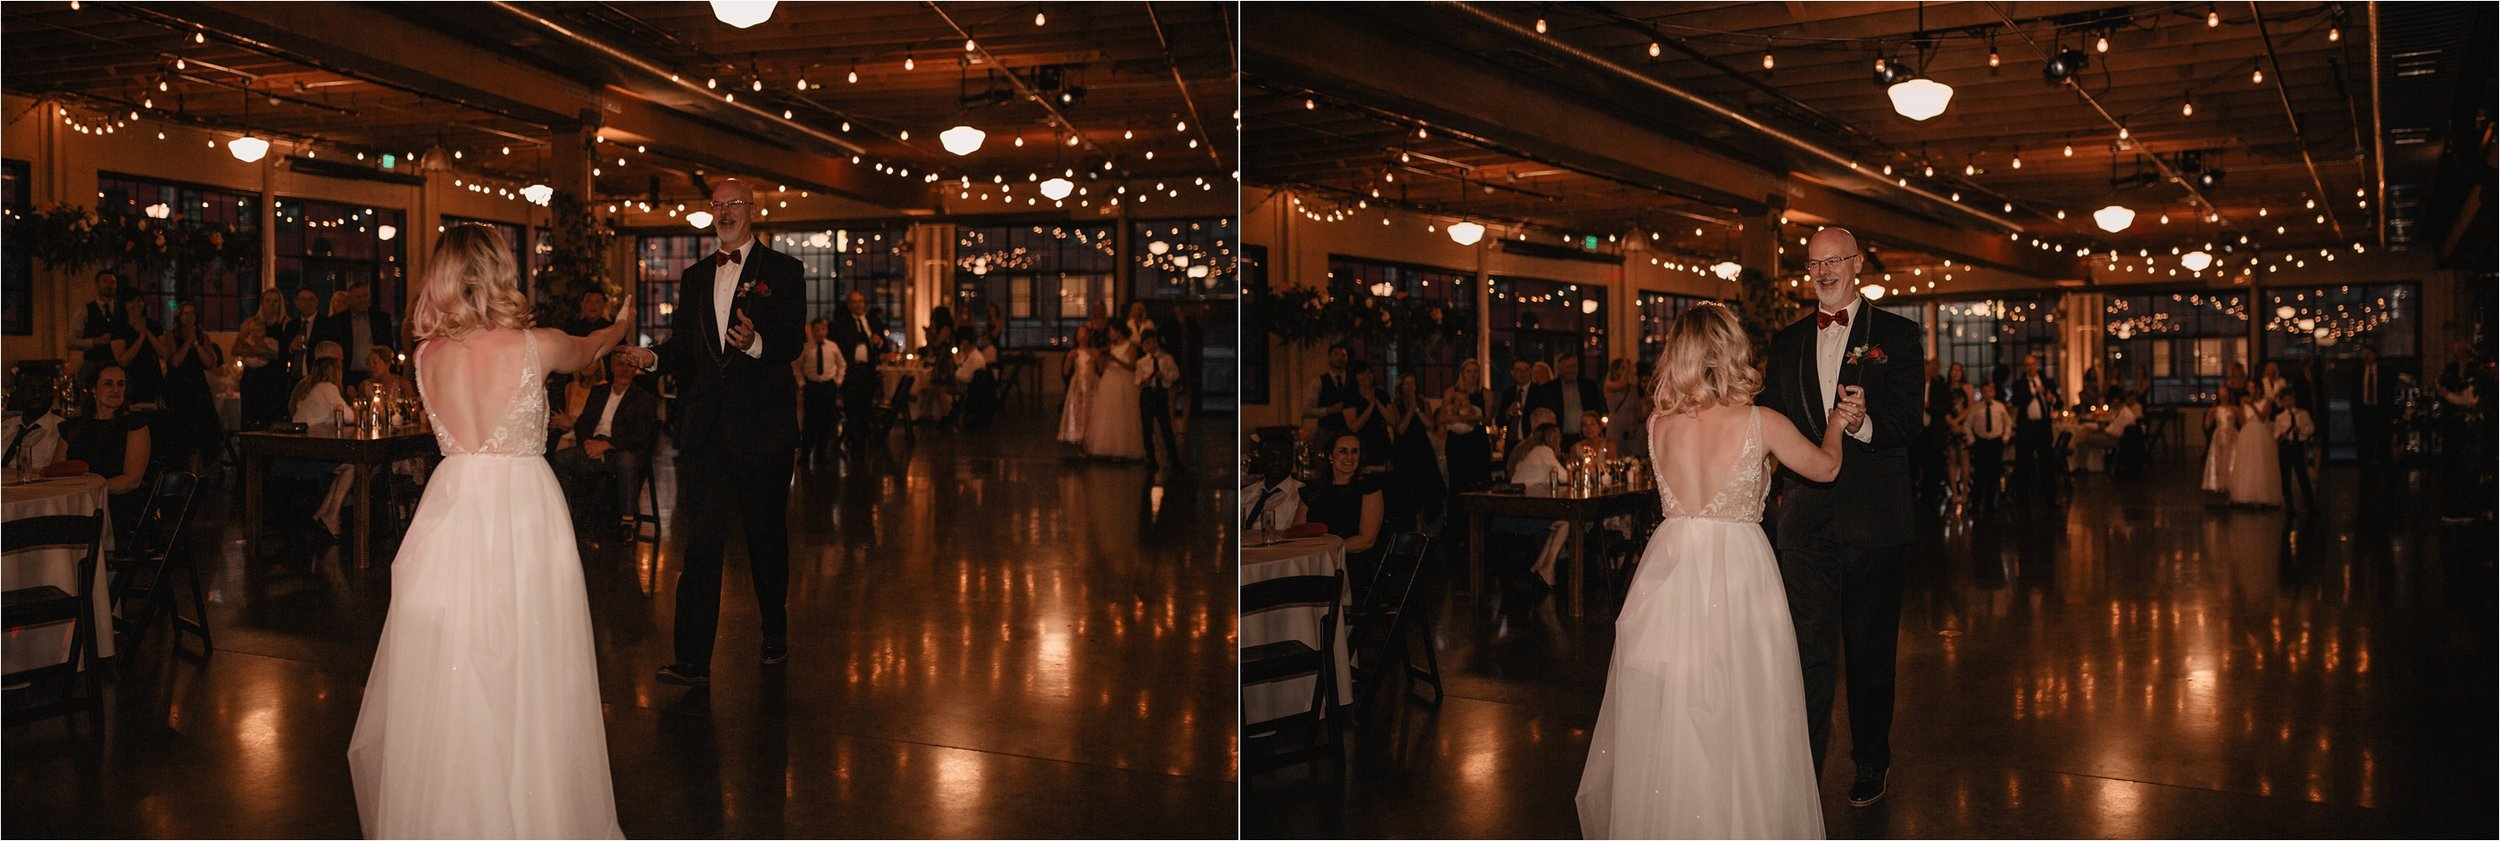 modernized-vintage-wedding-portland-city_0128.jpg